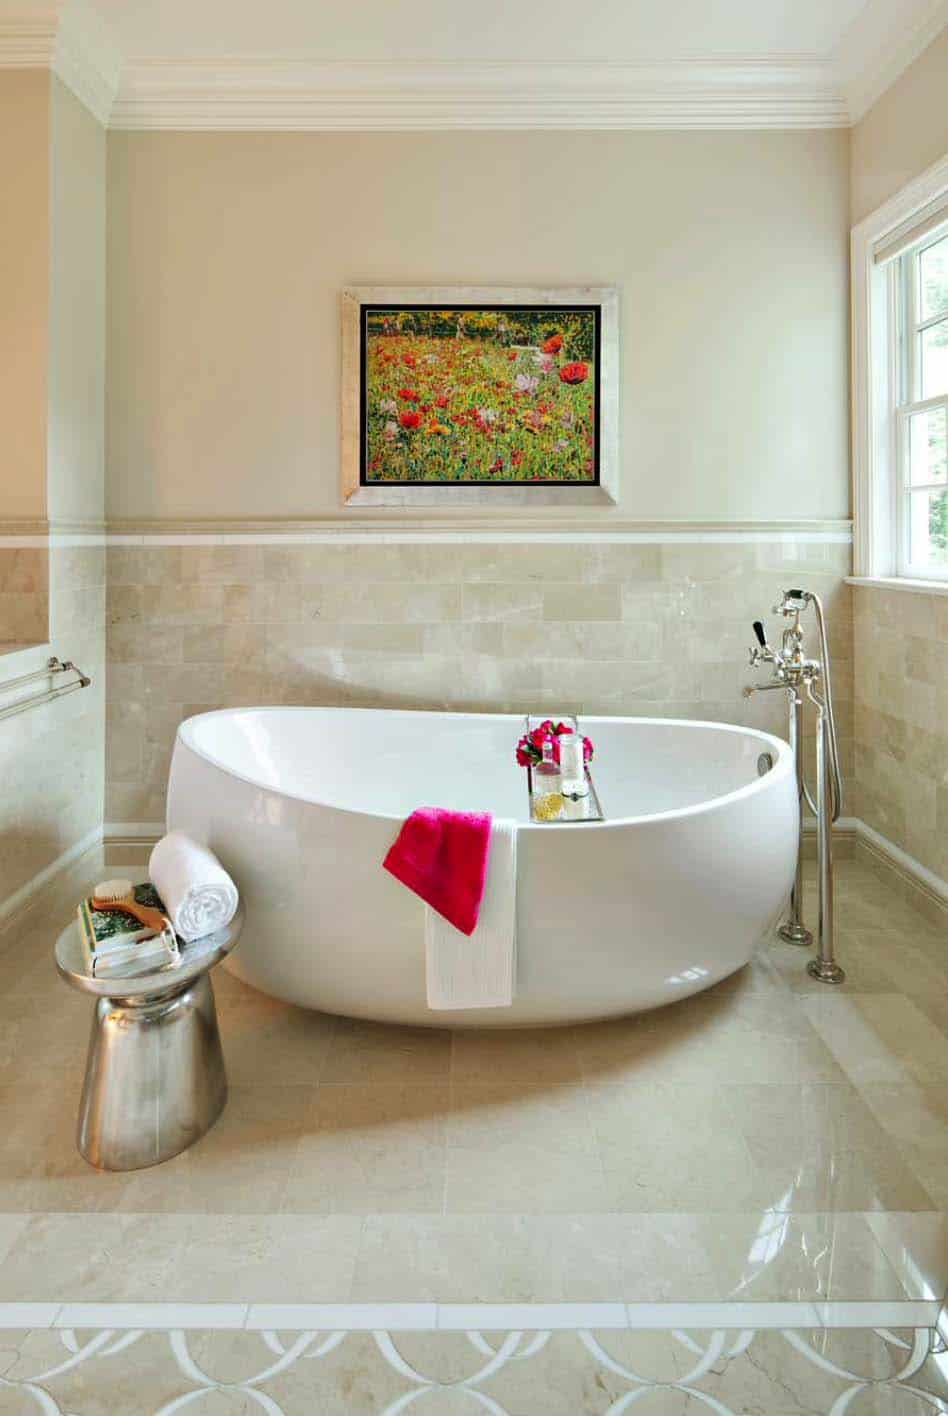 Freestanding Tubs Bathroom Ideas 30 1 Kindesign